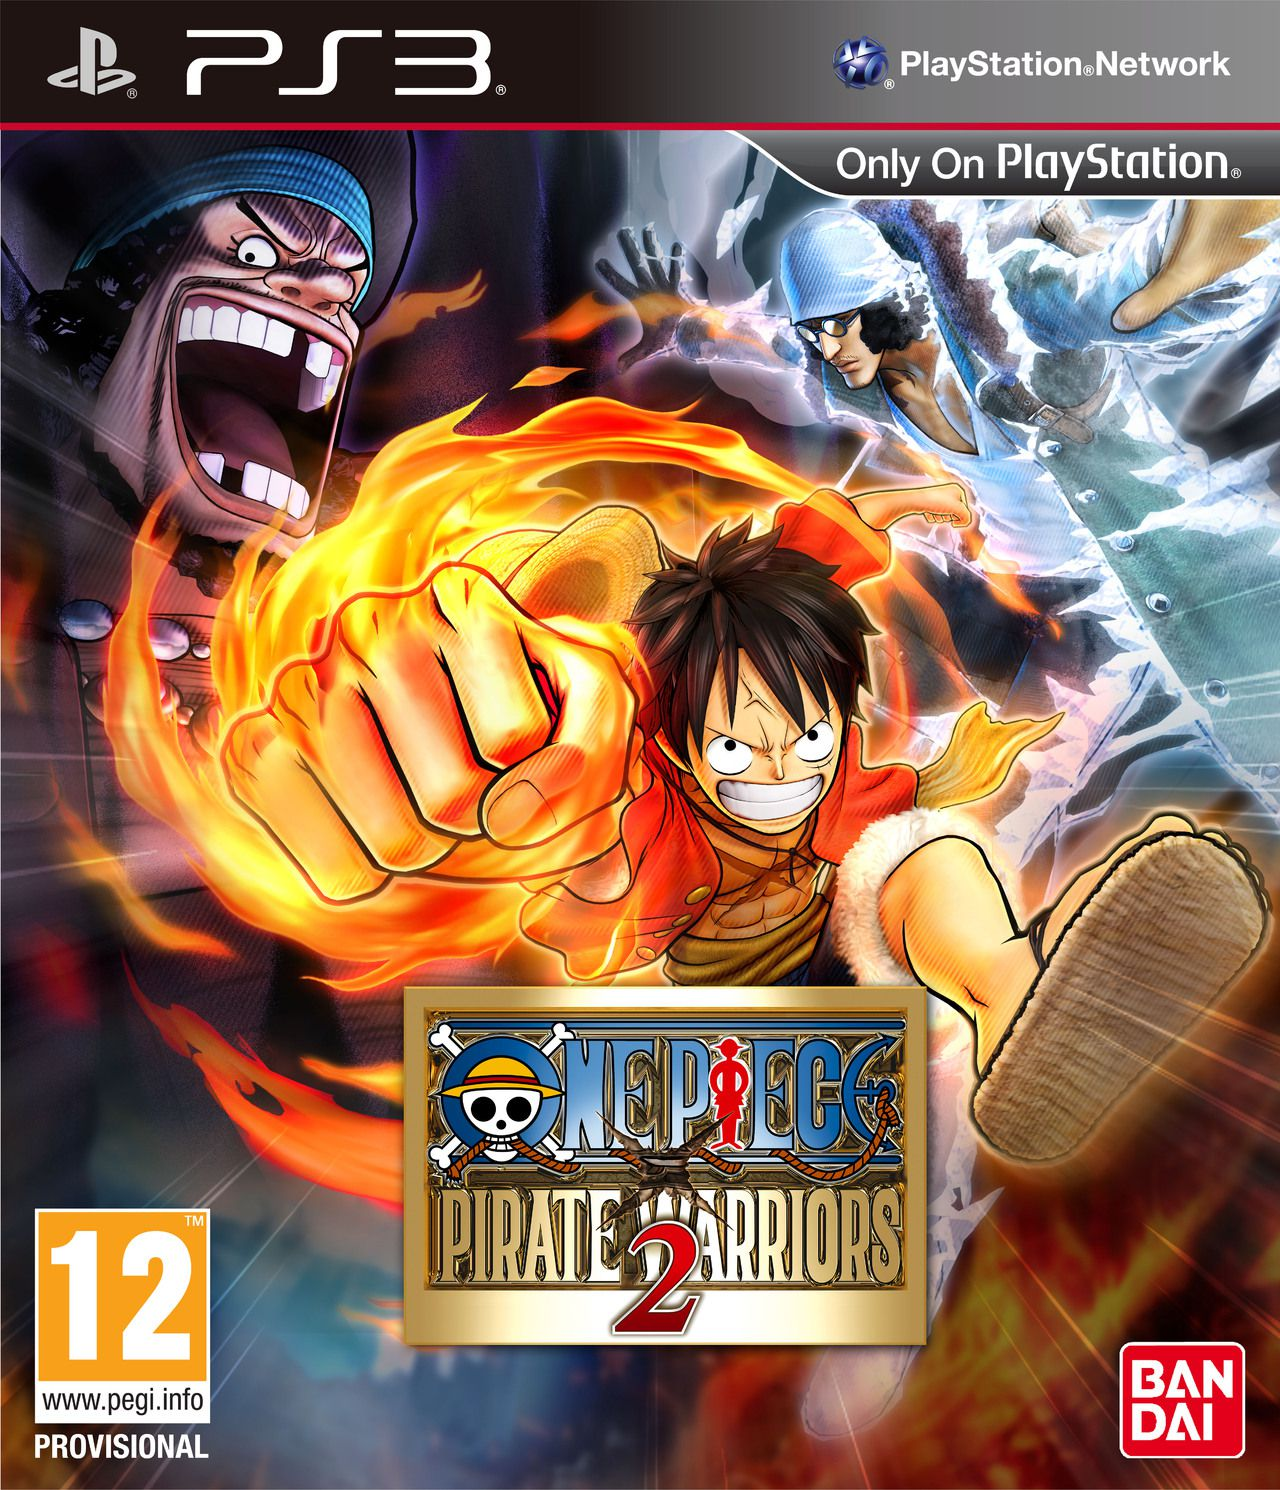 One Piece : Pirate Warriors 2 (2013)  - Jeu vidéo streaming VF gratuit complet